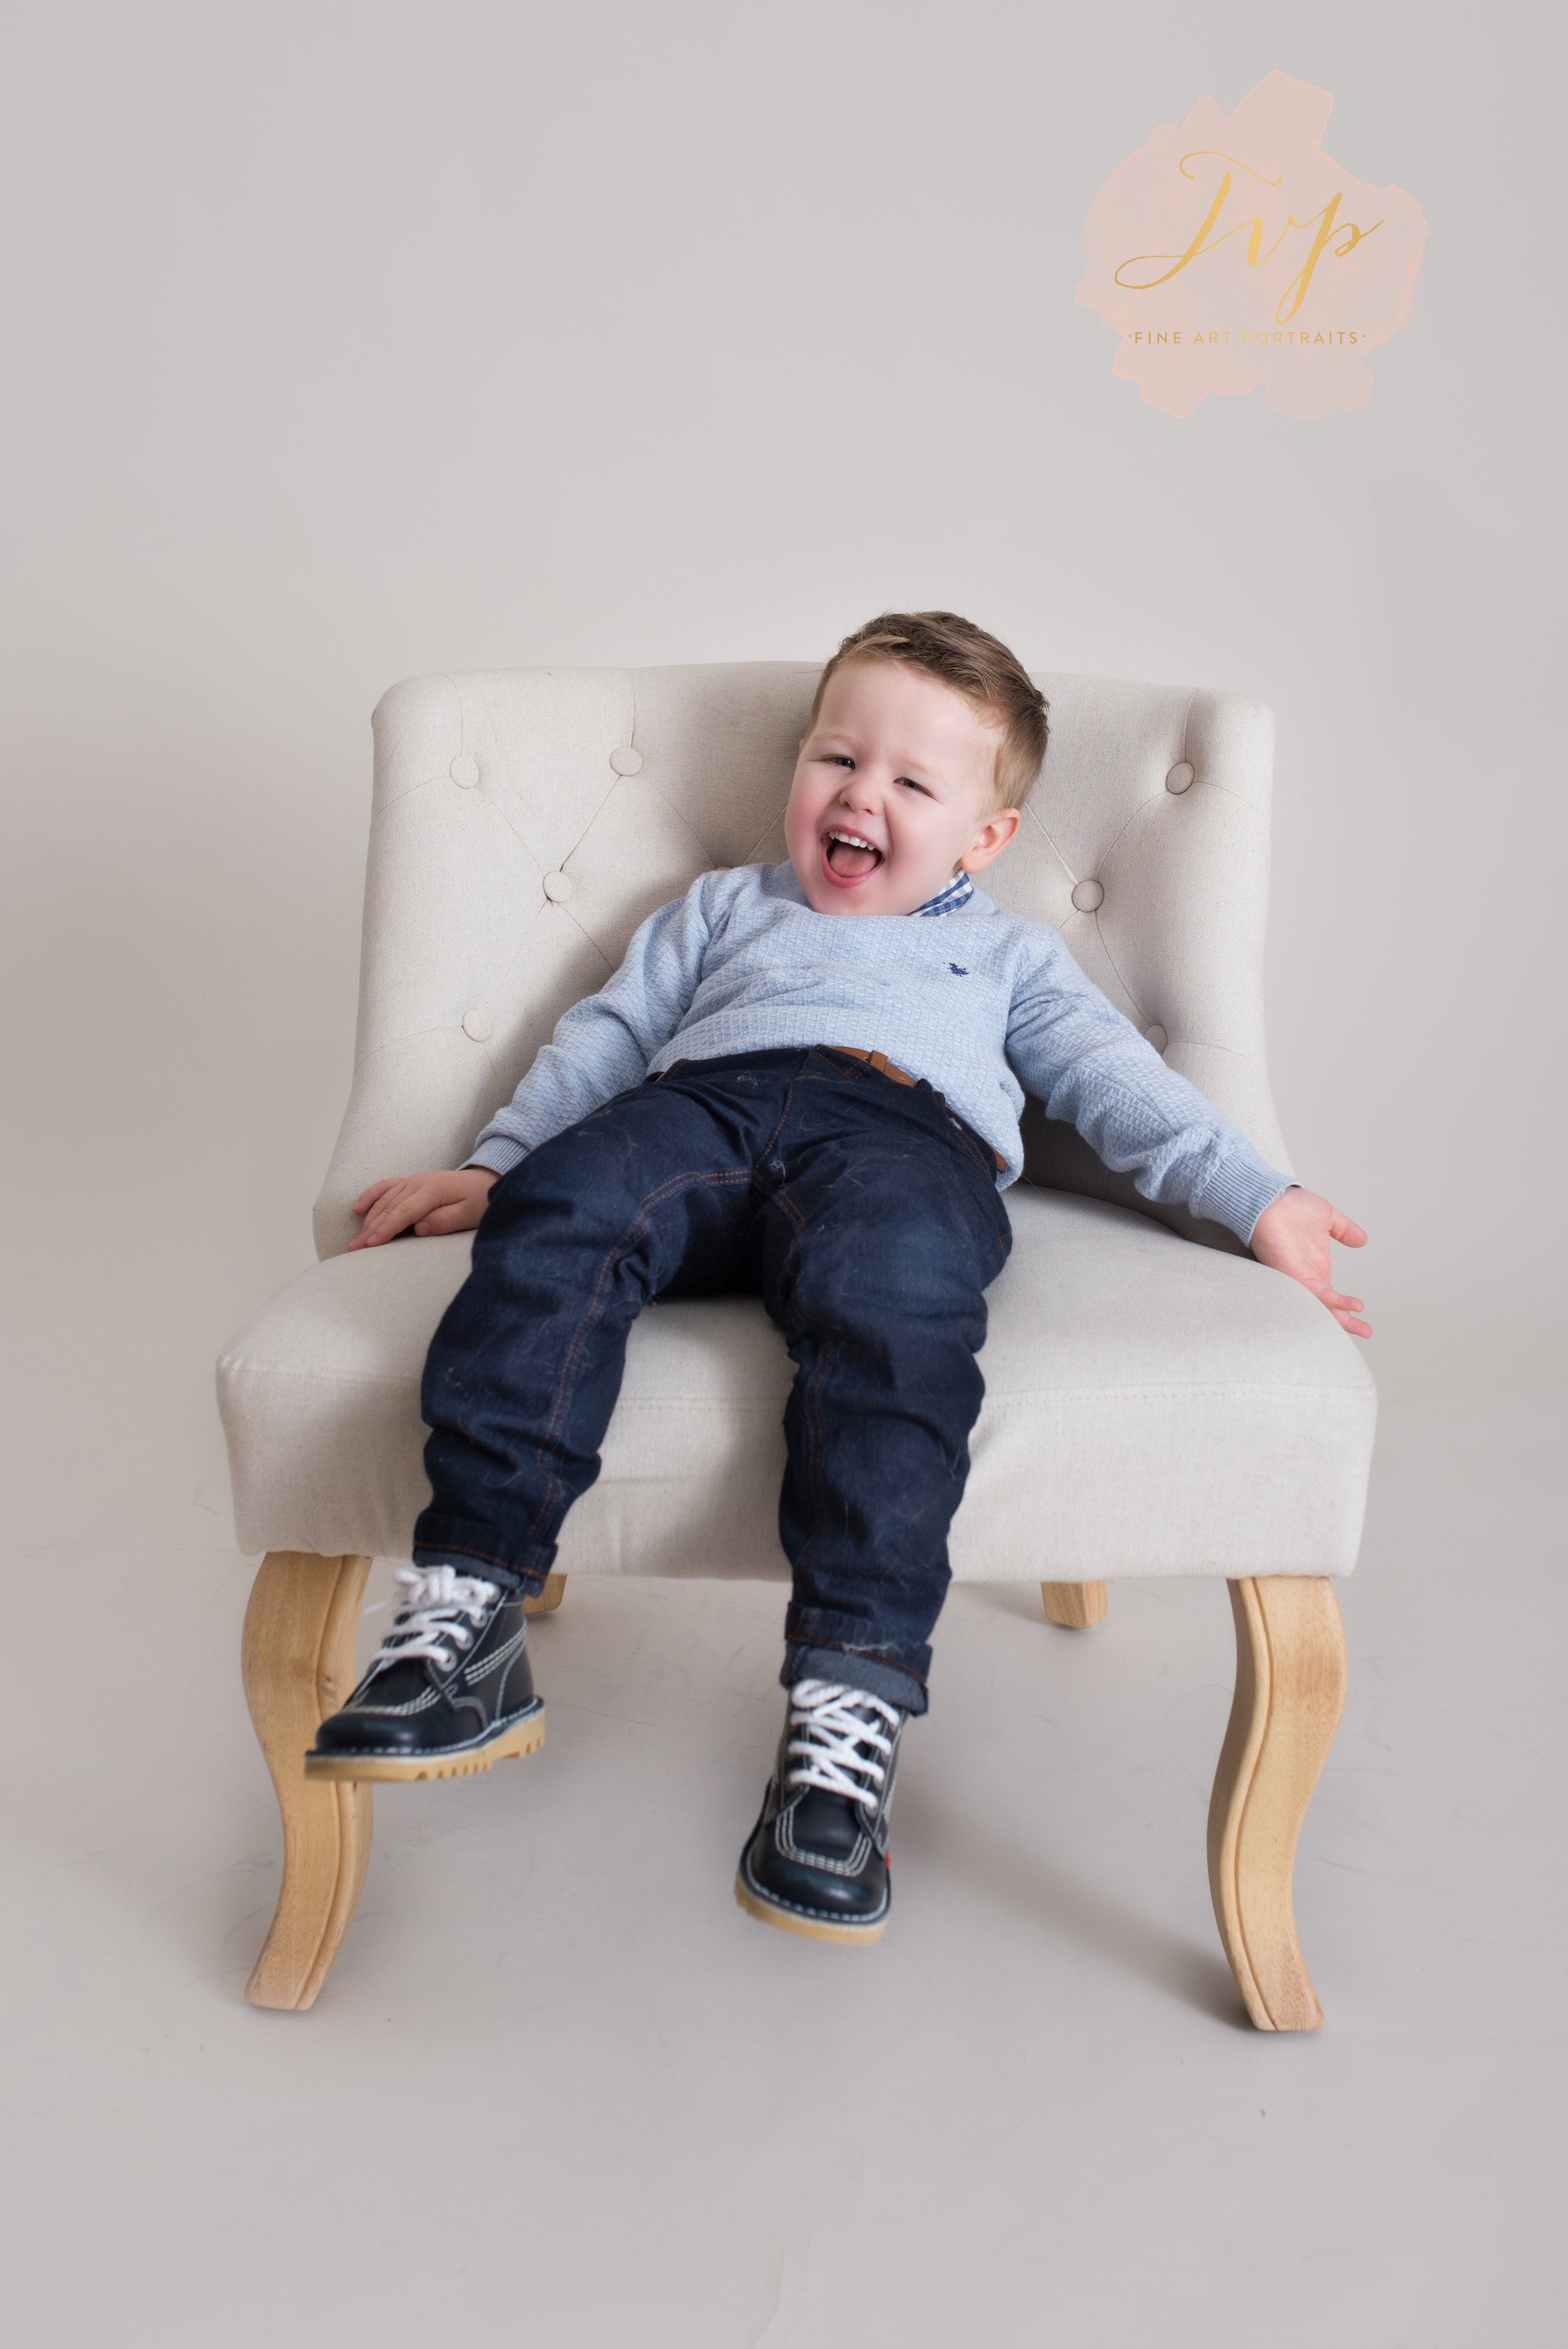 laughing-on-chair-family-photographer-glasgow